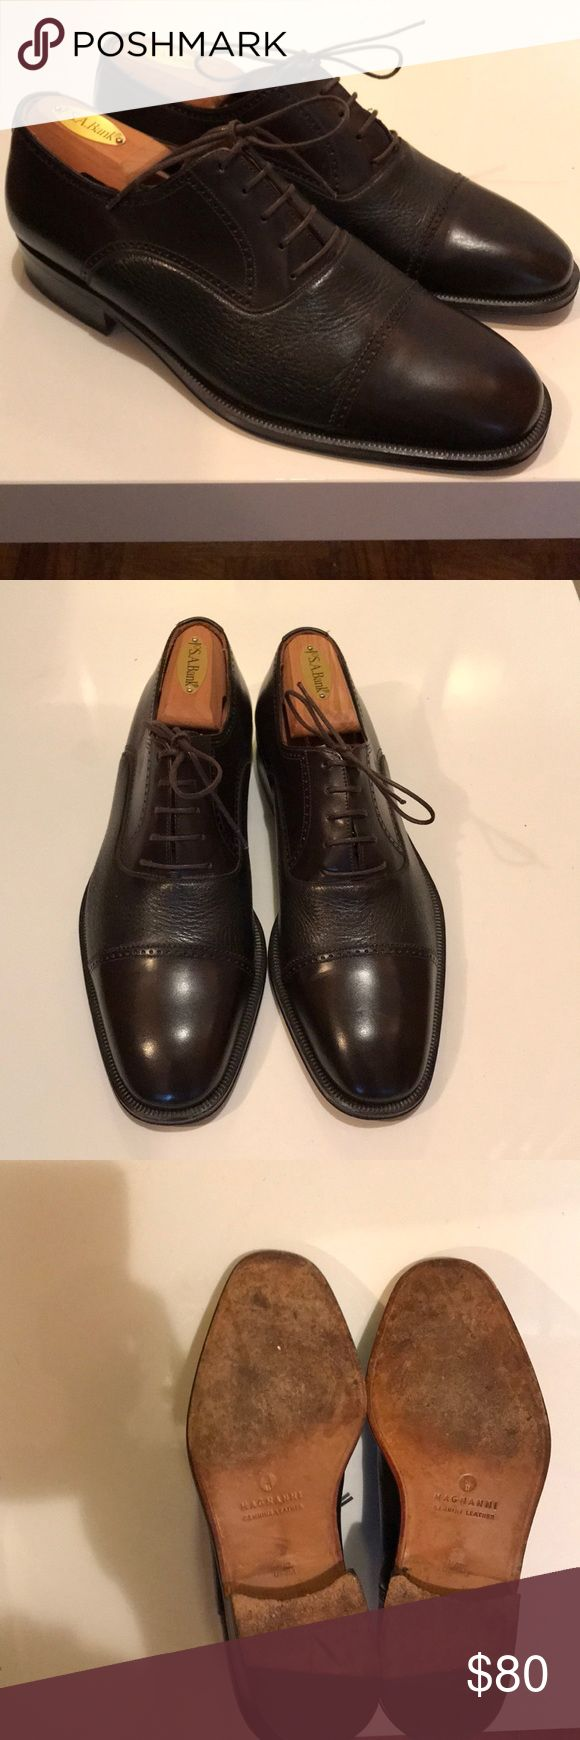 Magnanni brown leather shoes R 9, L 8.5 Excellent used condition men's brown l...